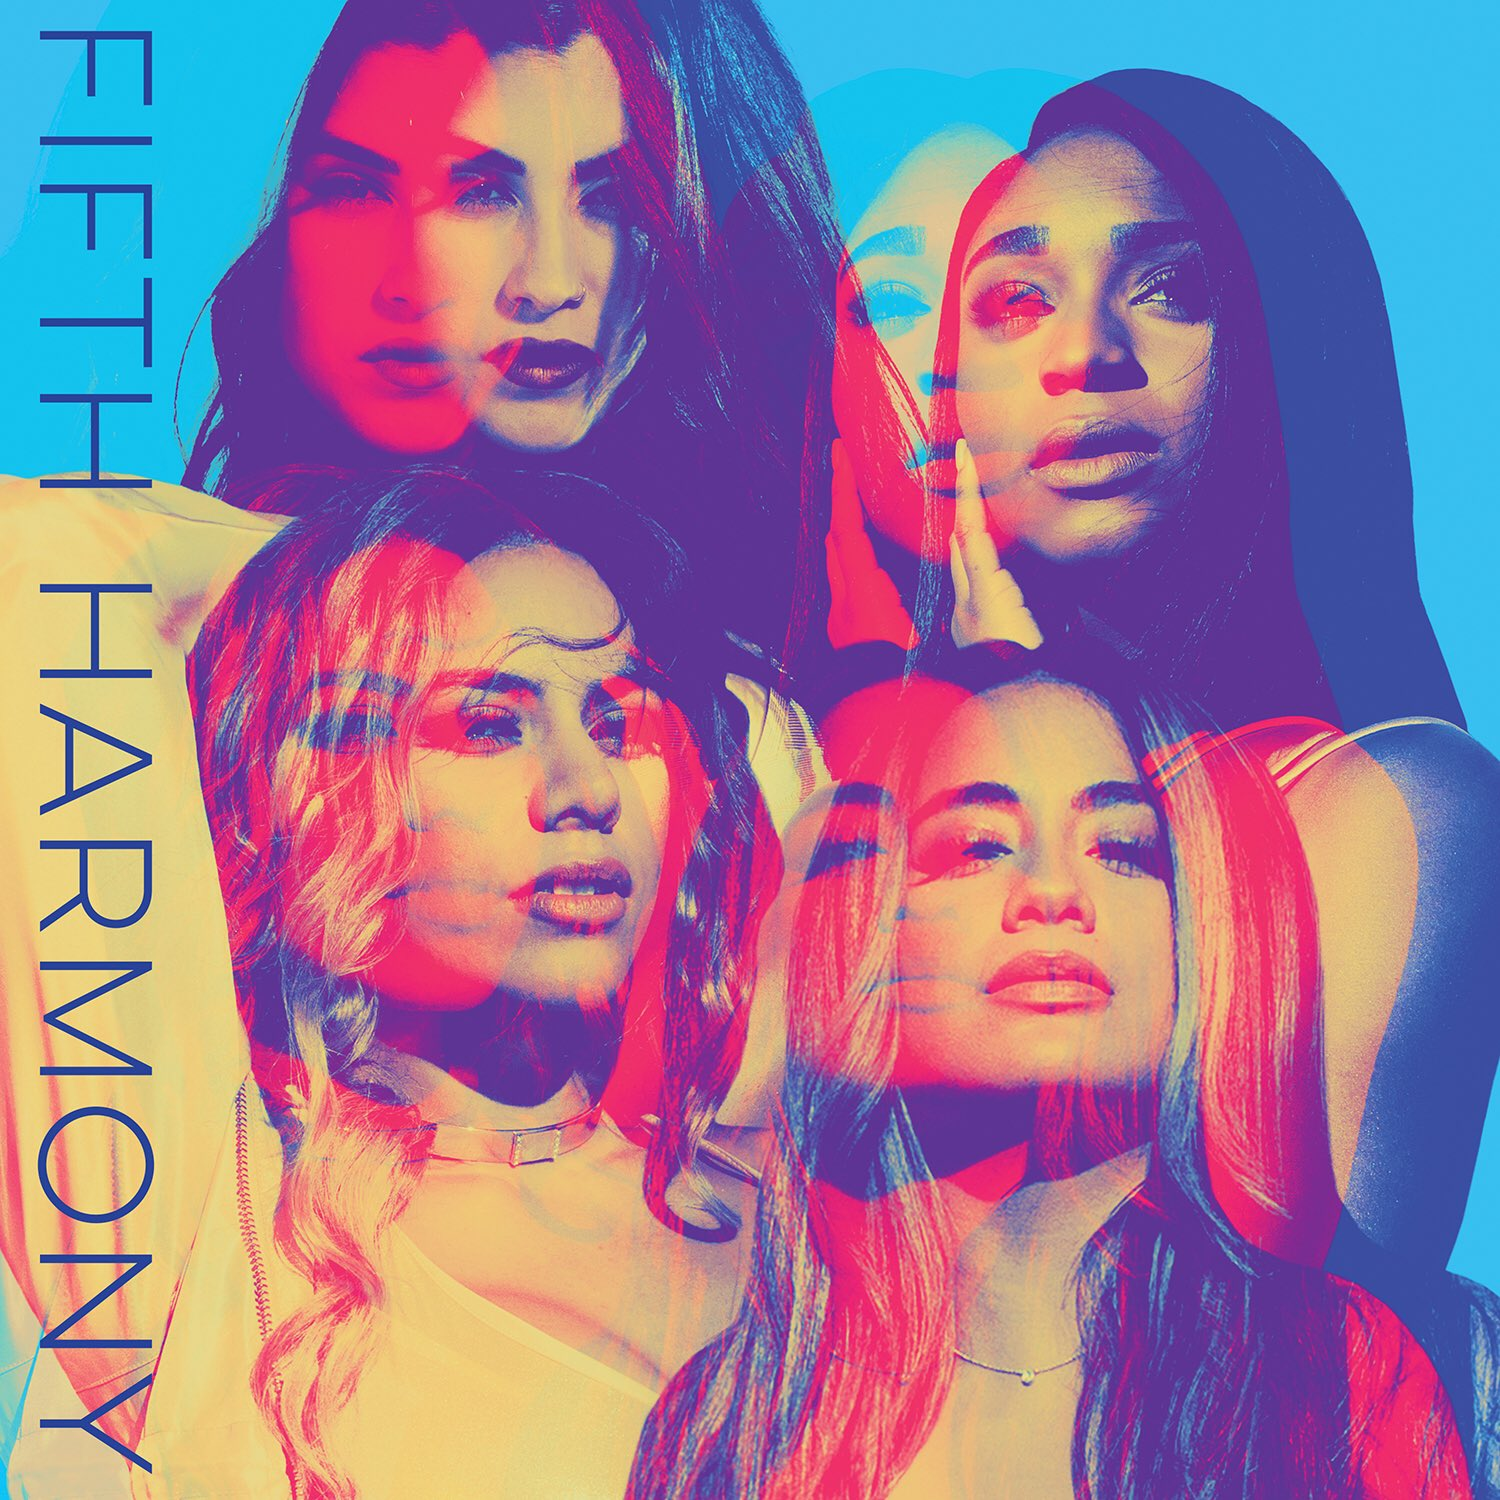 The wait is over! #FifthHarmony OUT NOW ������ https://t.co/6std18LES2